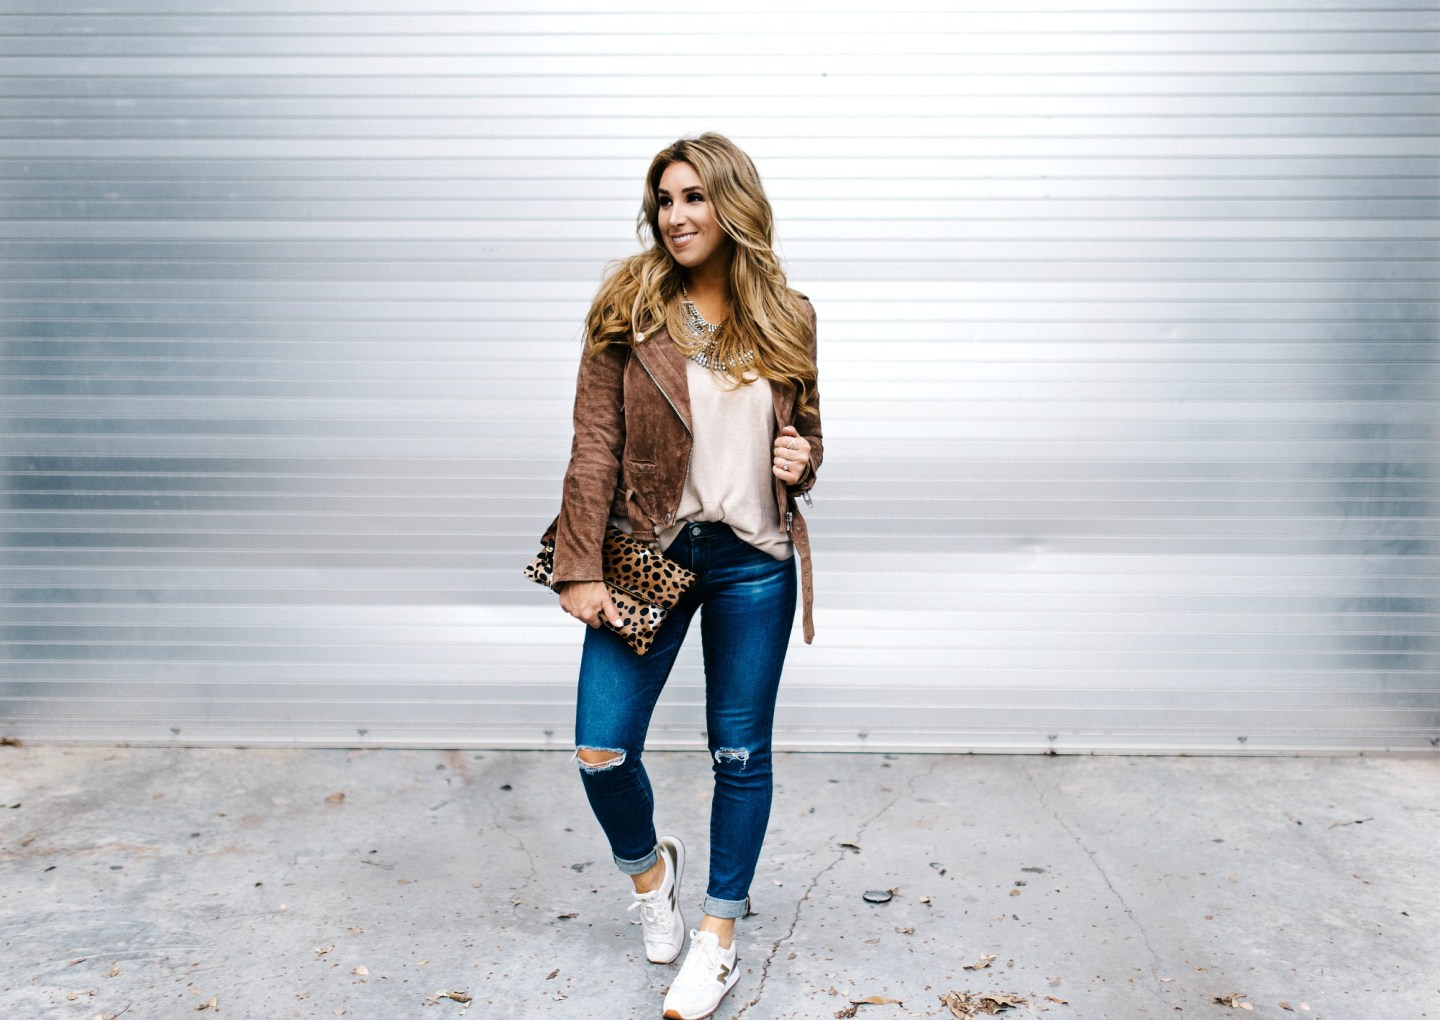 Ripped Denim and a Suede Jacket | January Hart Blog